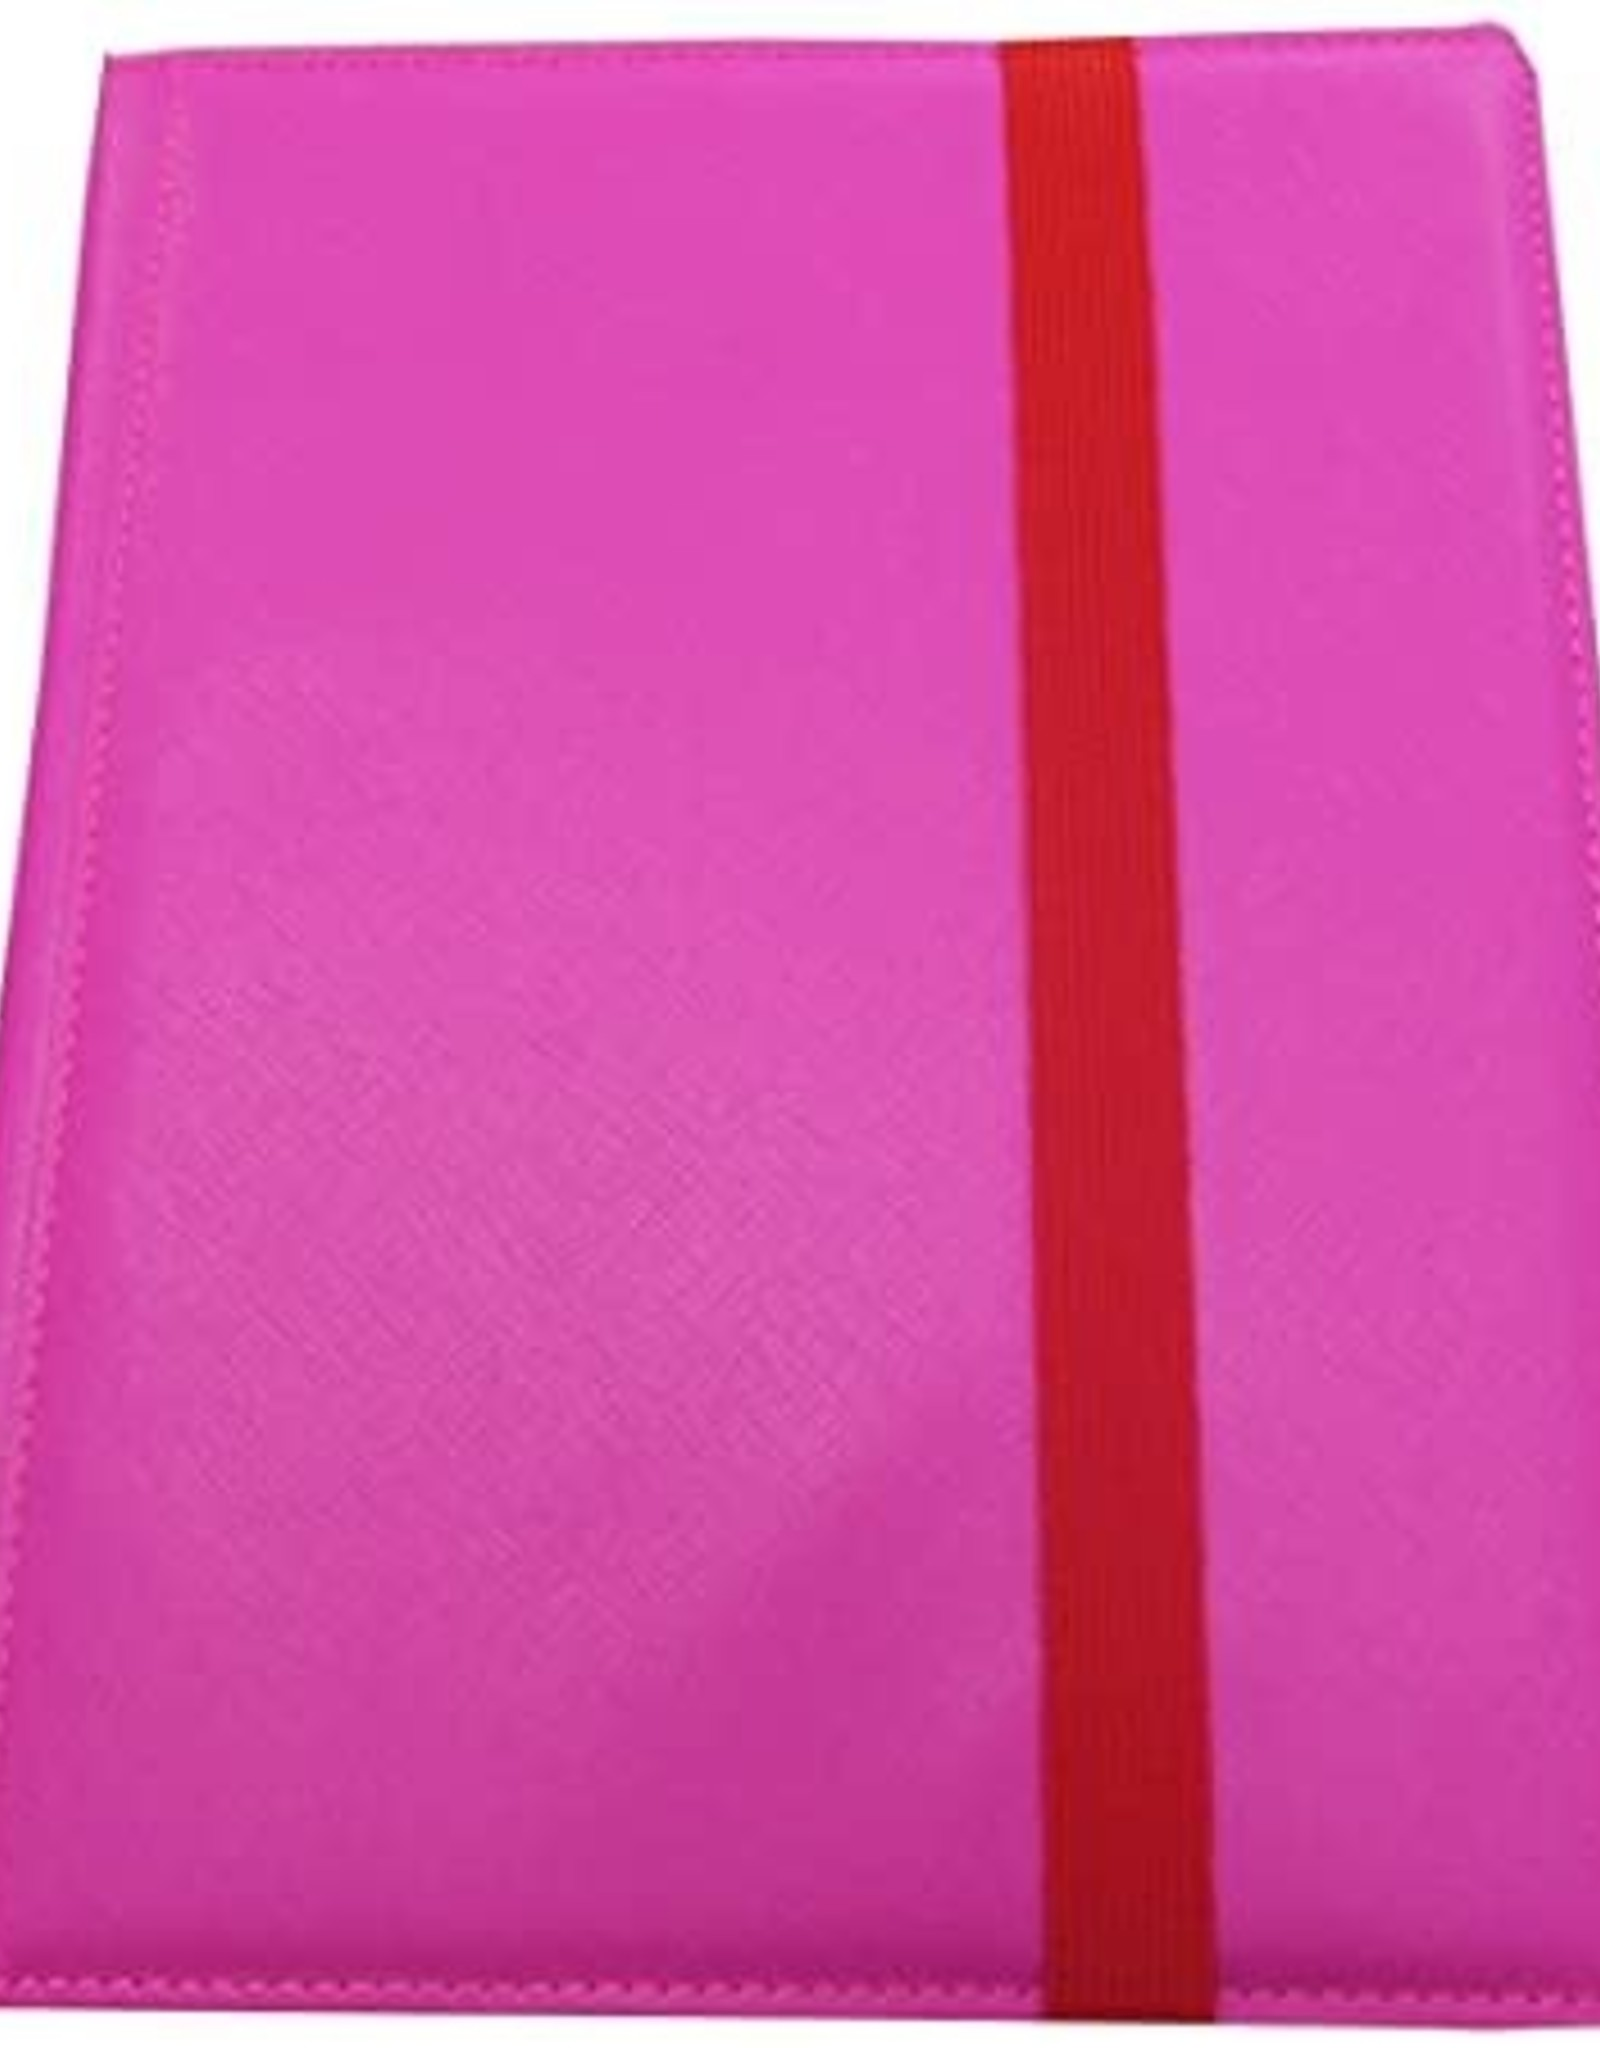 Dex Protection Dex Binder 9 Purple